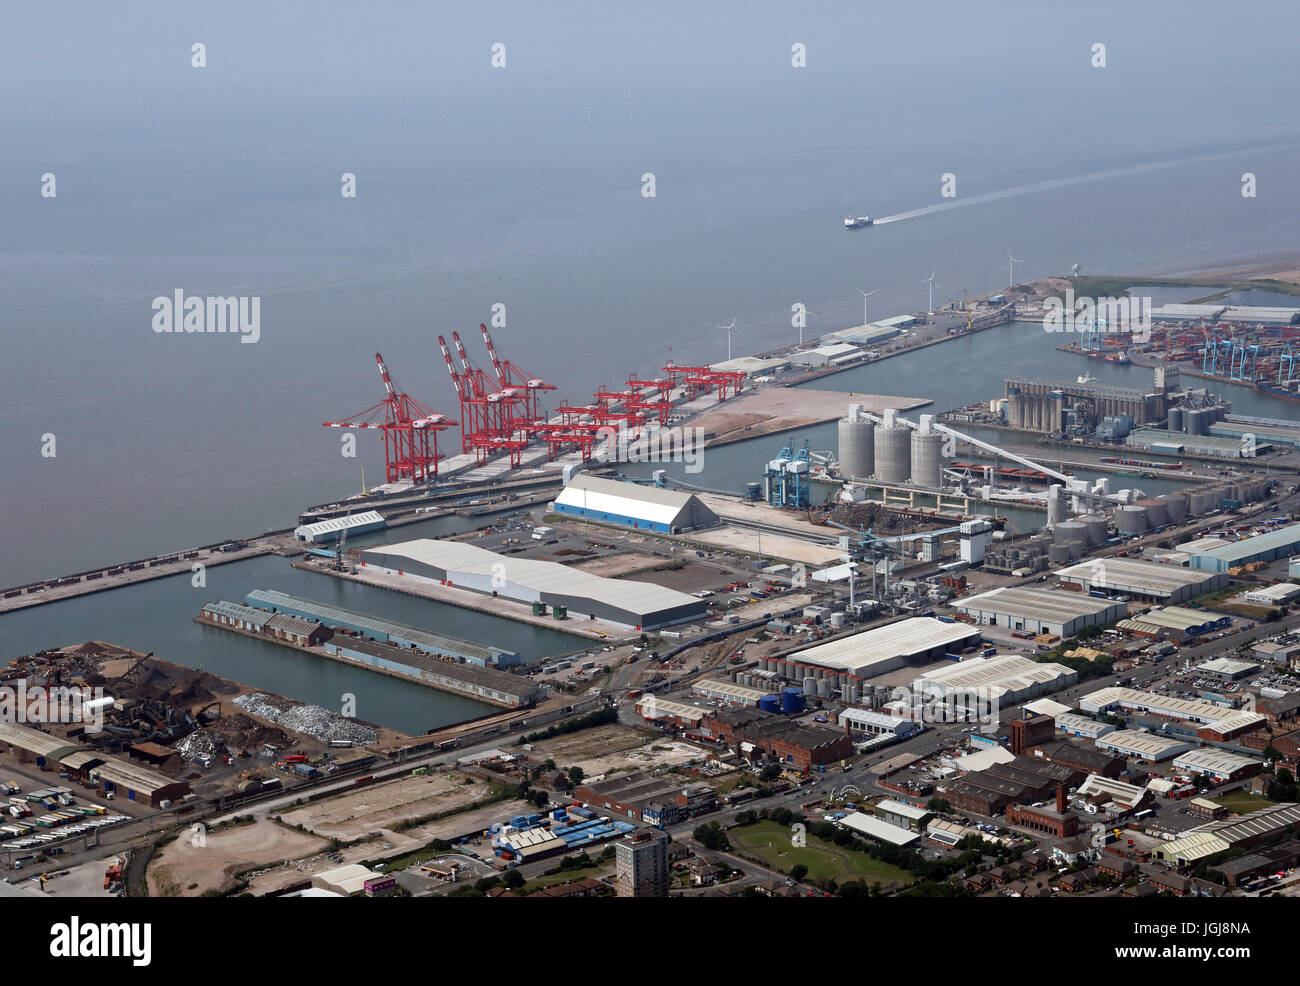 aerial view of Seaforth Docks in Liverpool, UK - Stock Image